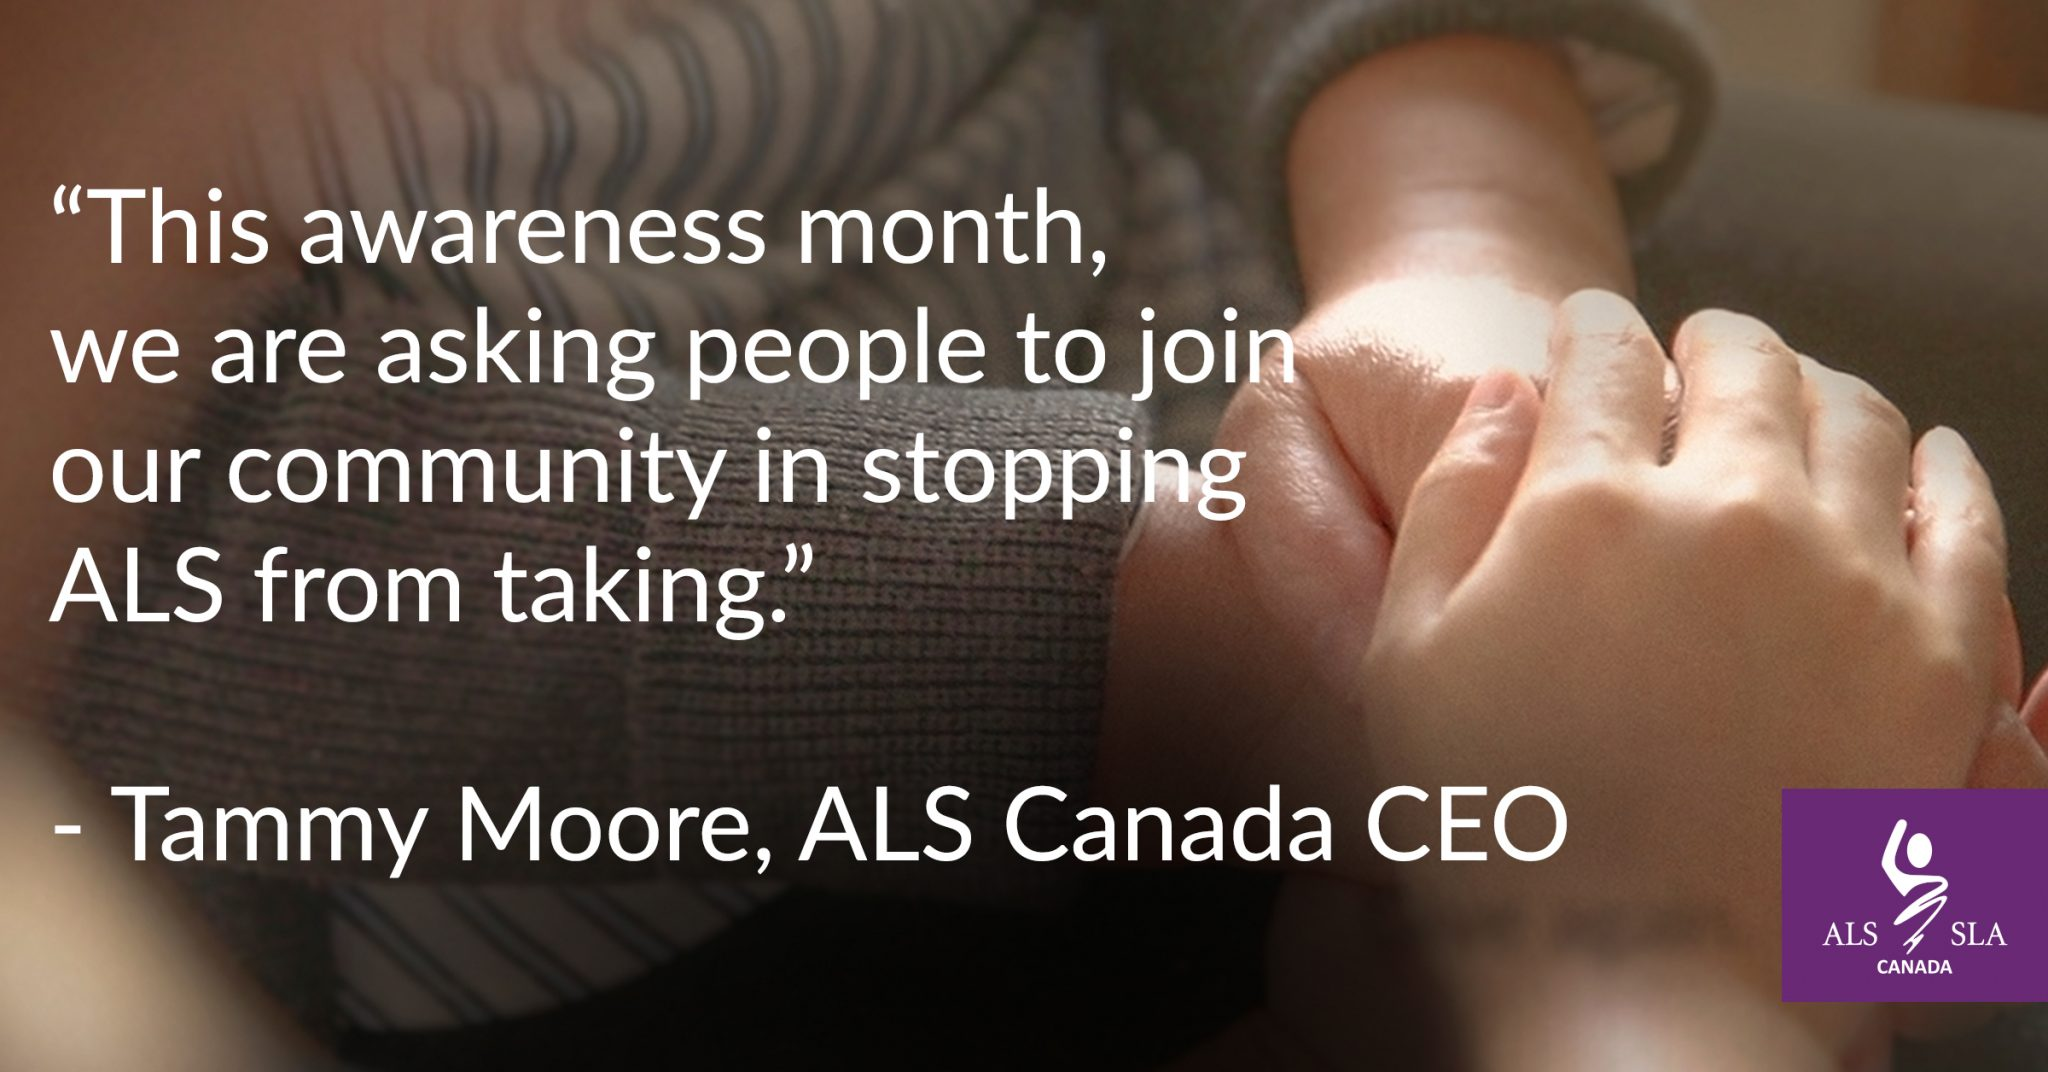 Acting against everything that ALS takes - ALS Society of Canada